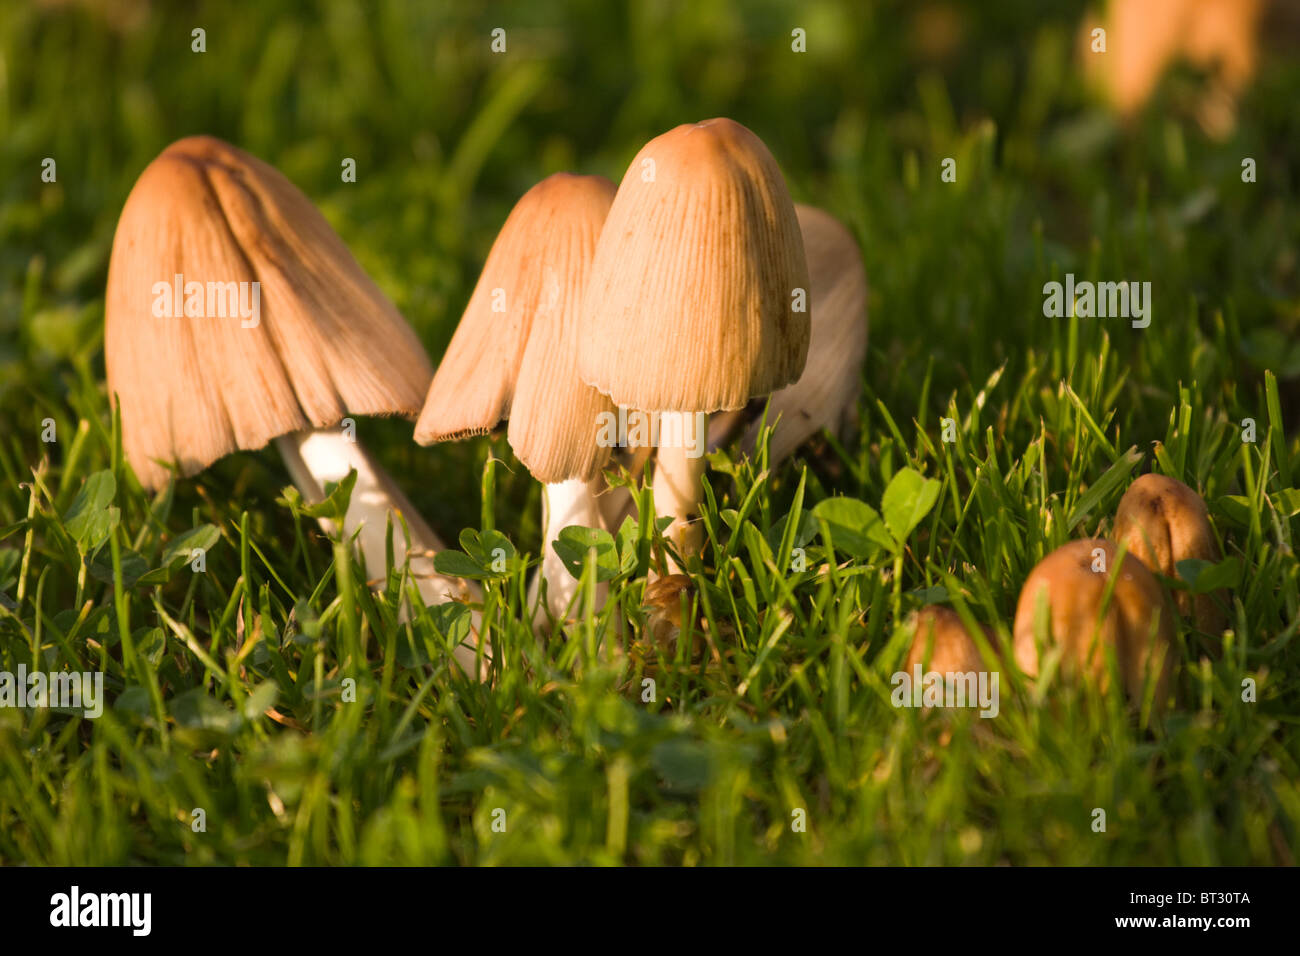 backyard mushrooms in the grass stock photo royalty free image